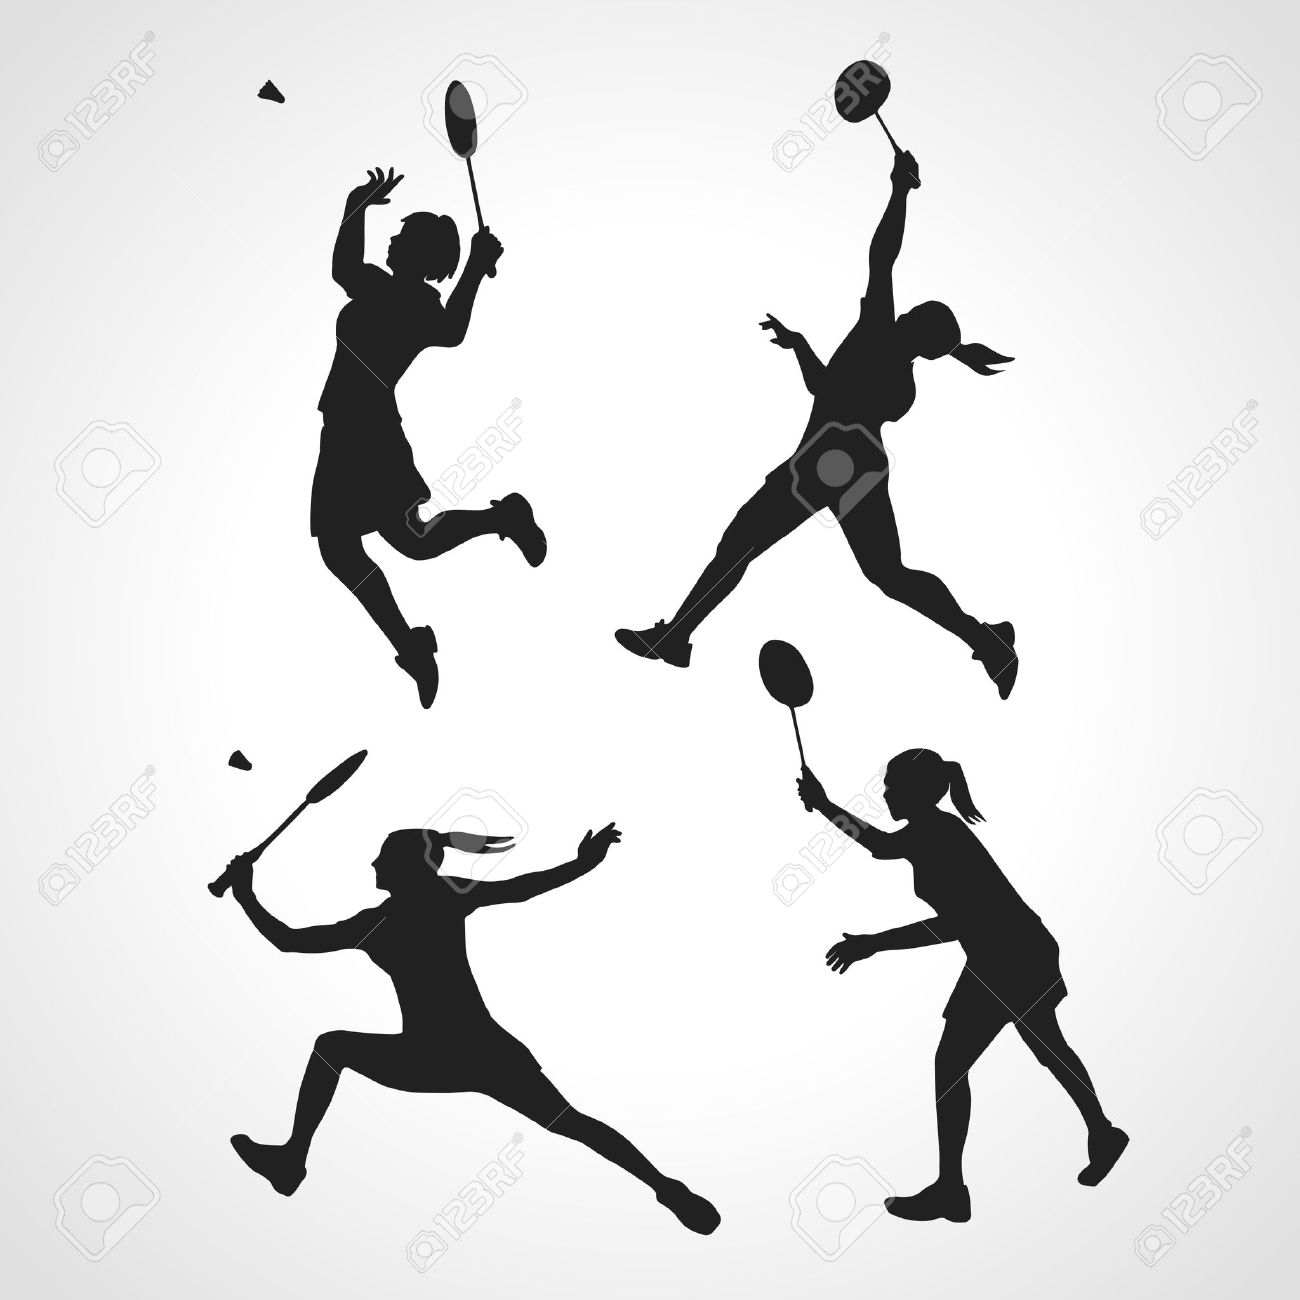 4 vector Silhouettes of female professional badminton players. Vector illustration - 49247905